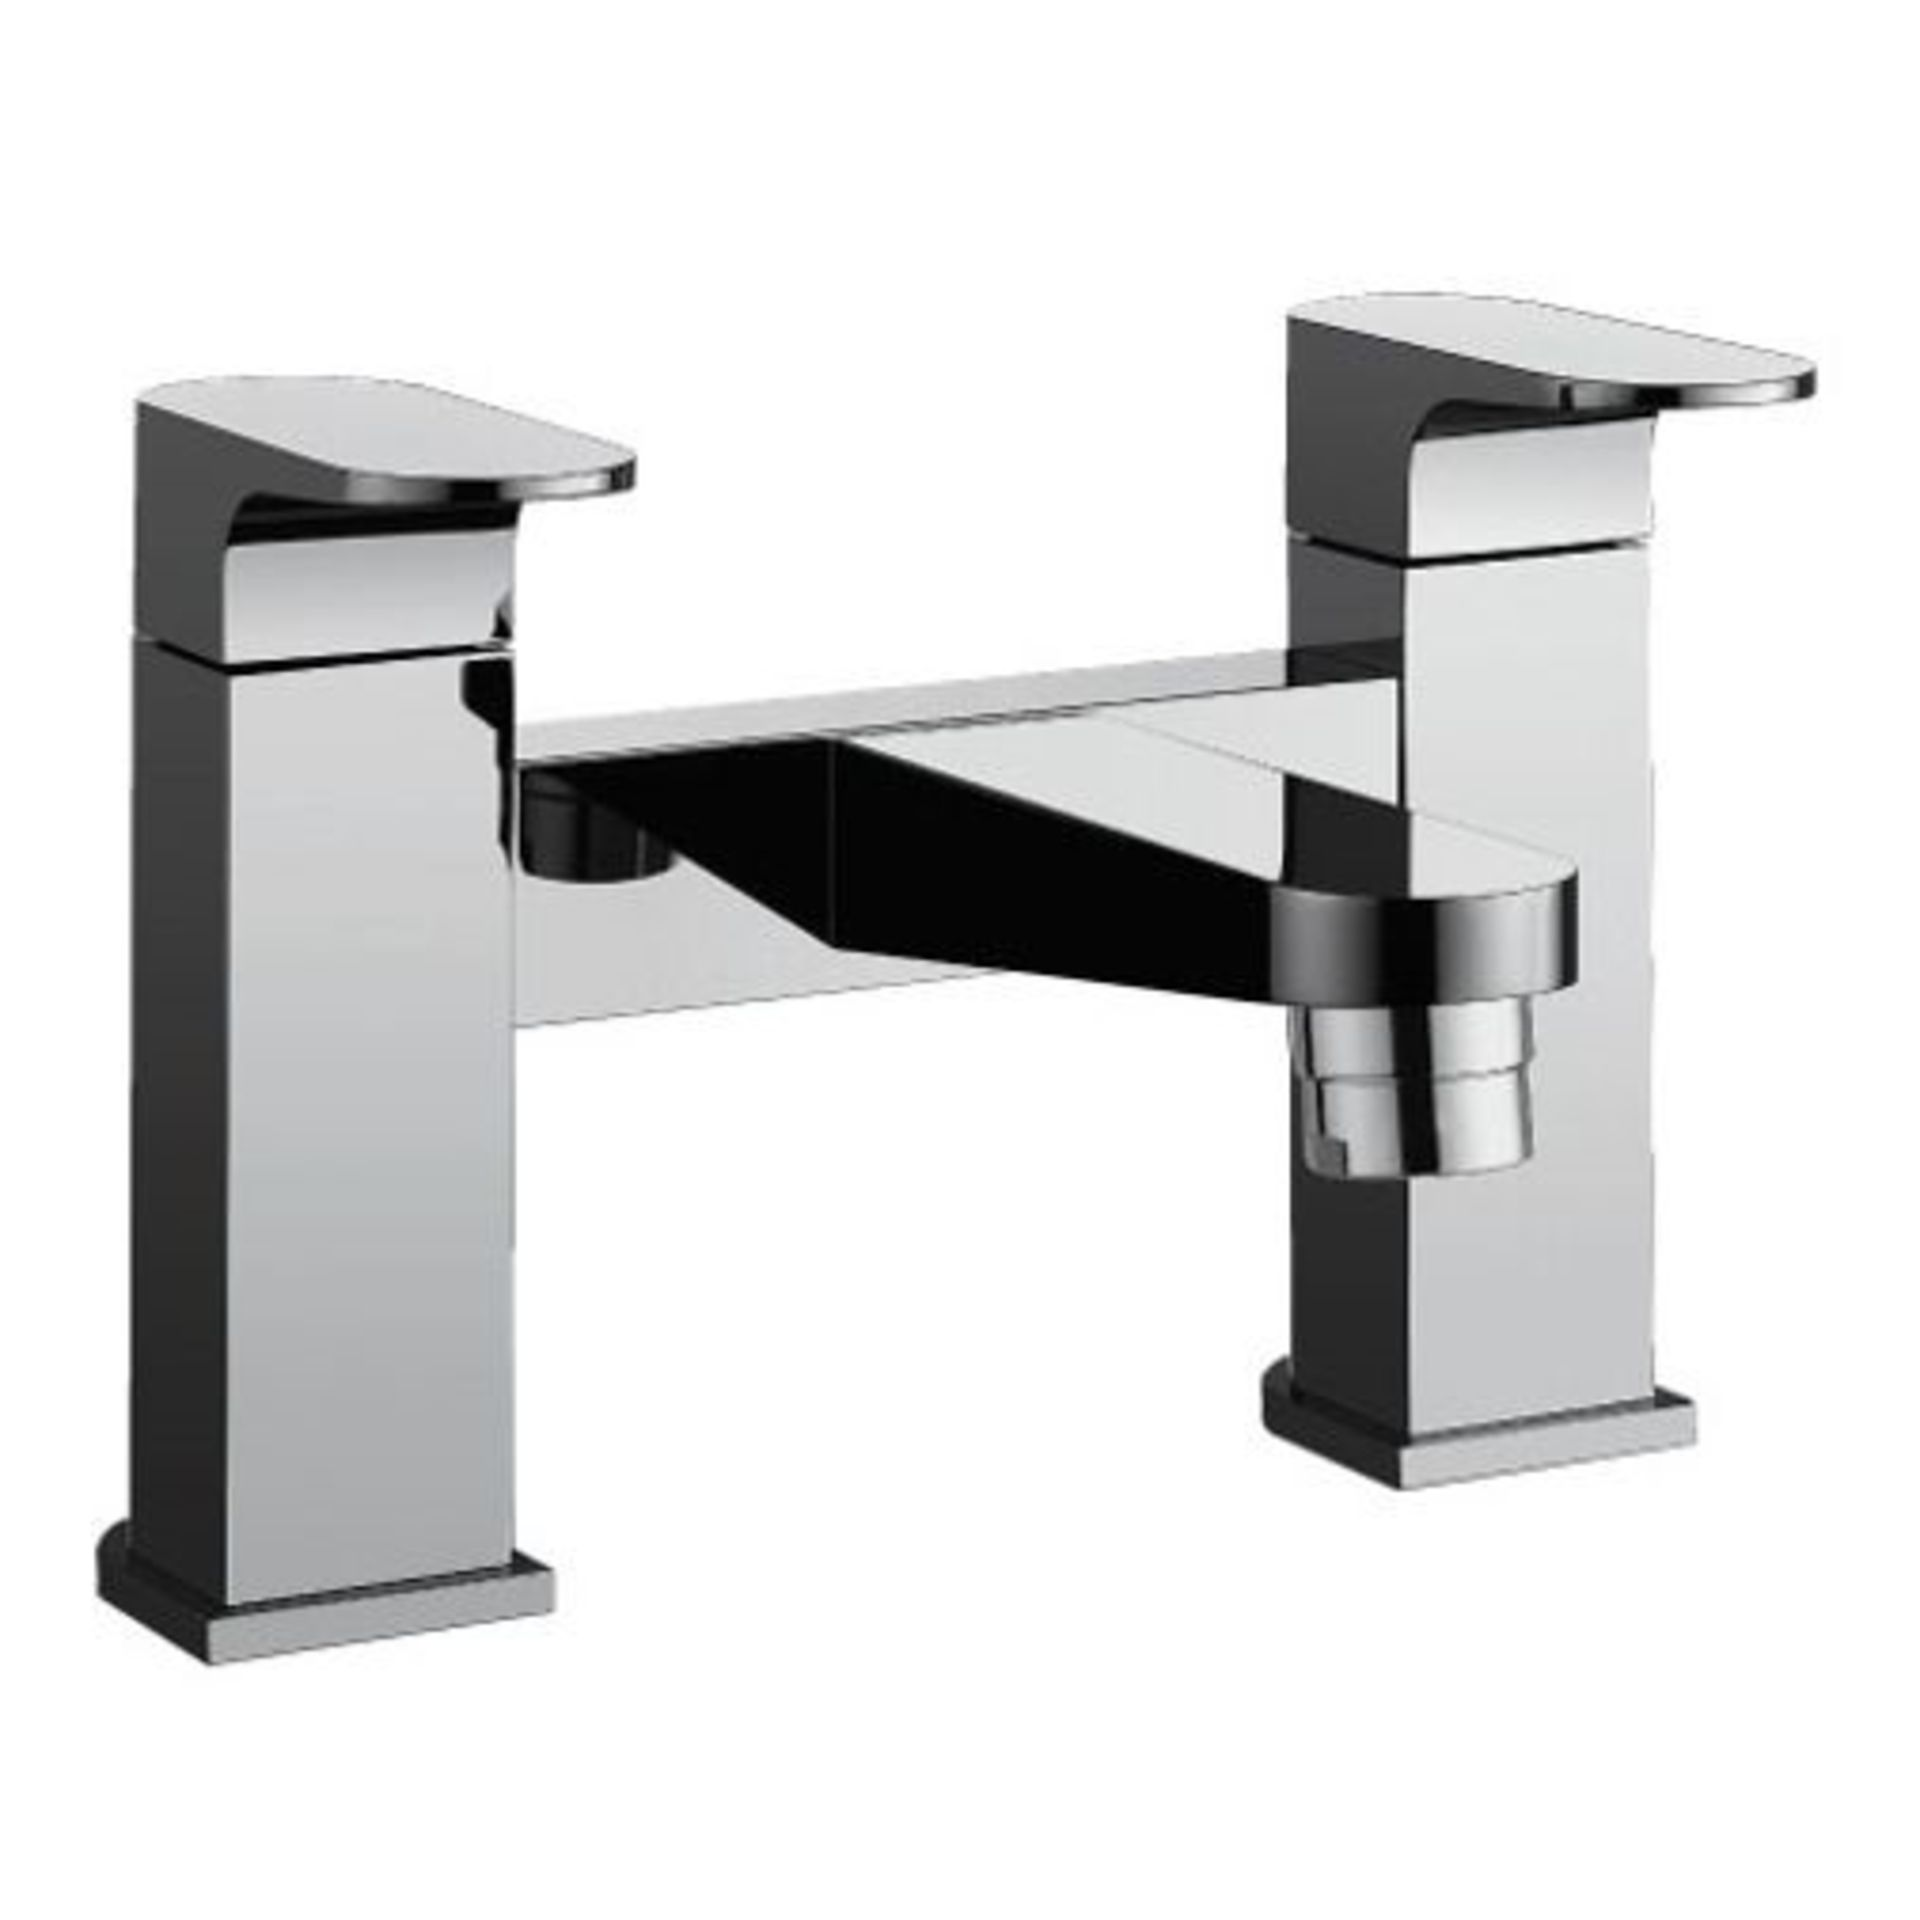 Lot 11 - Bathstore 'Track' very high quality, designer bath mixer tap.